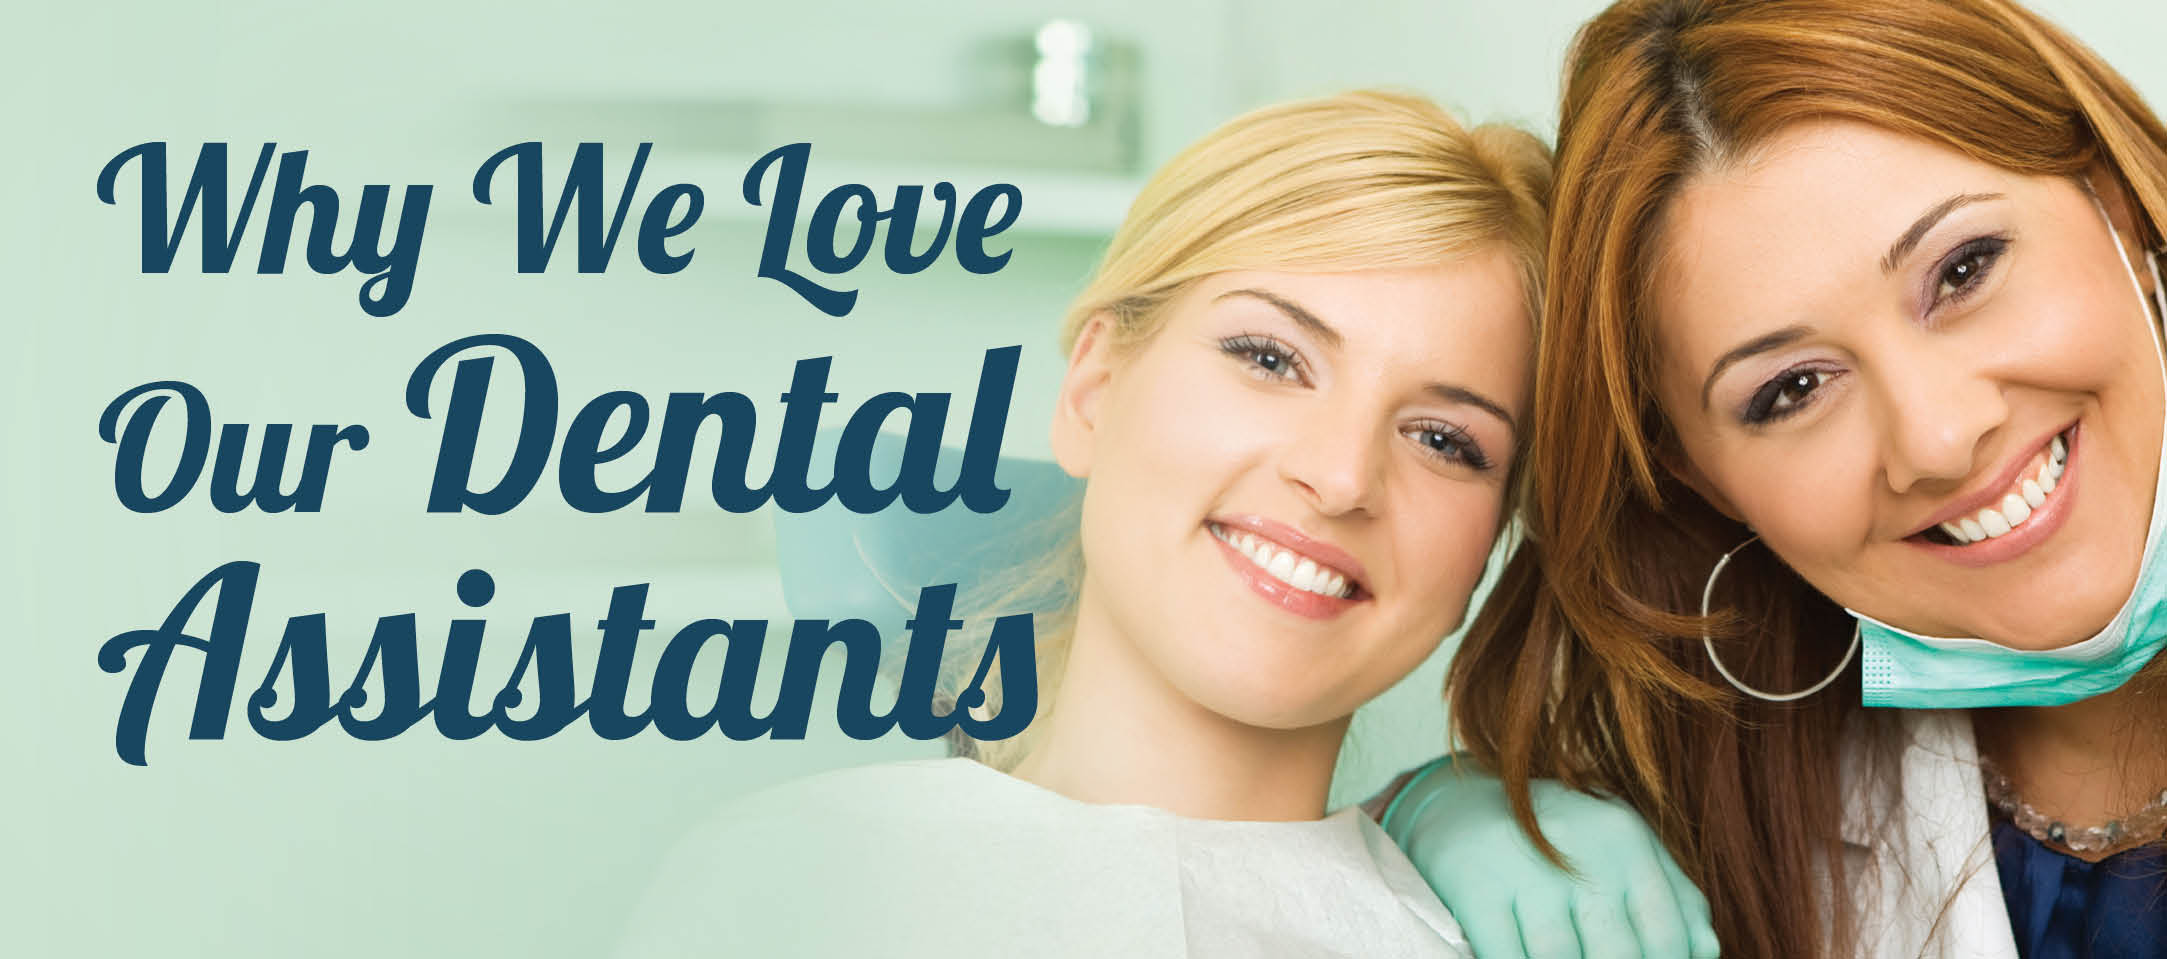 Why We Love Our Dental Assistants — and Why You Should Too!